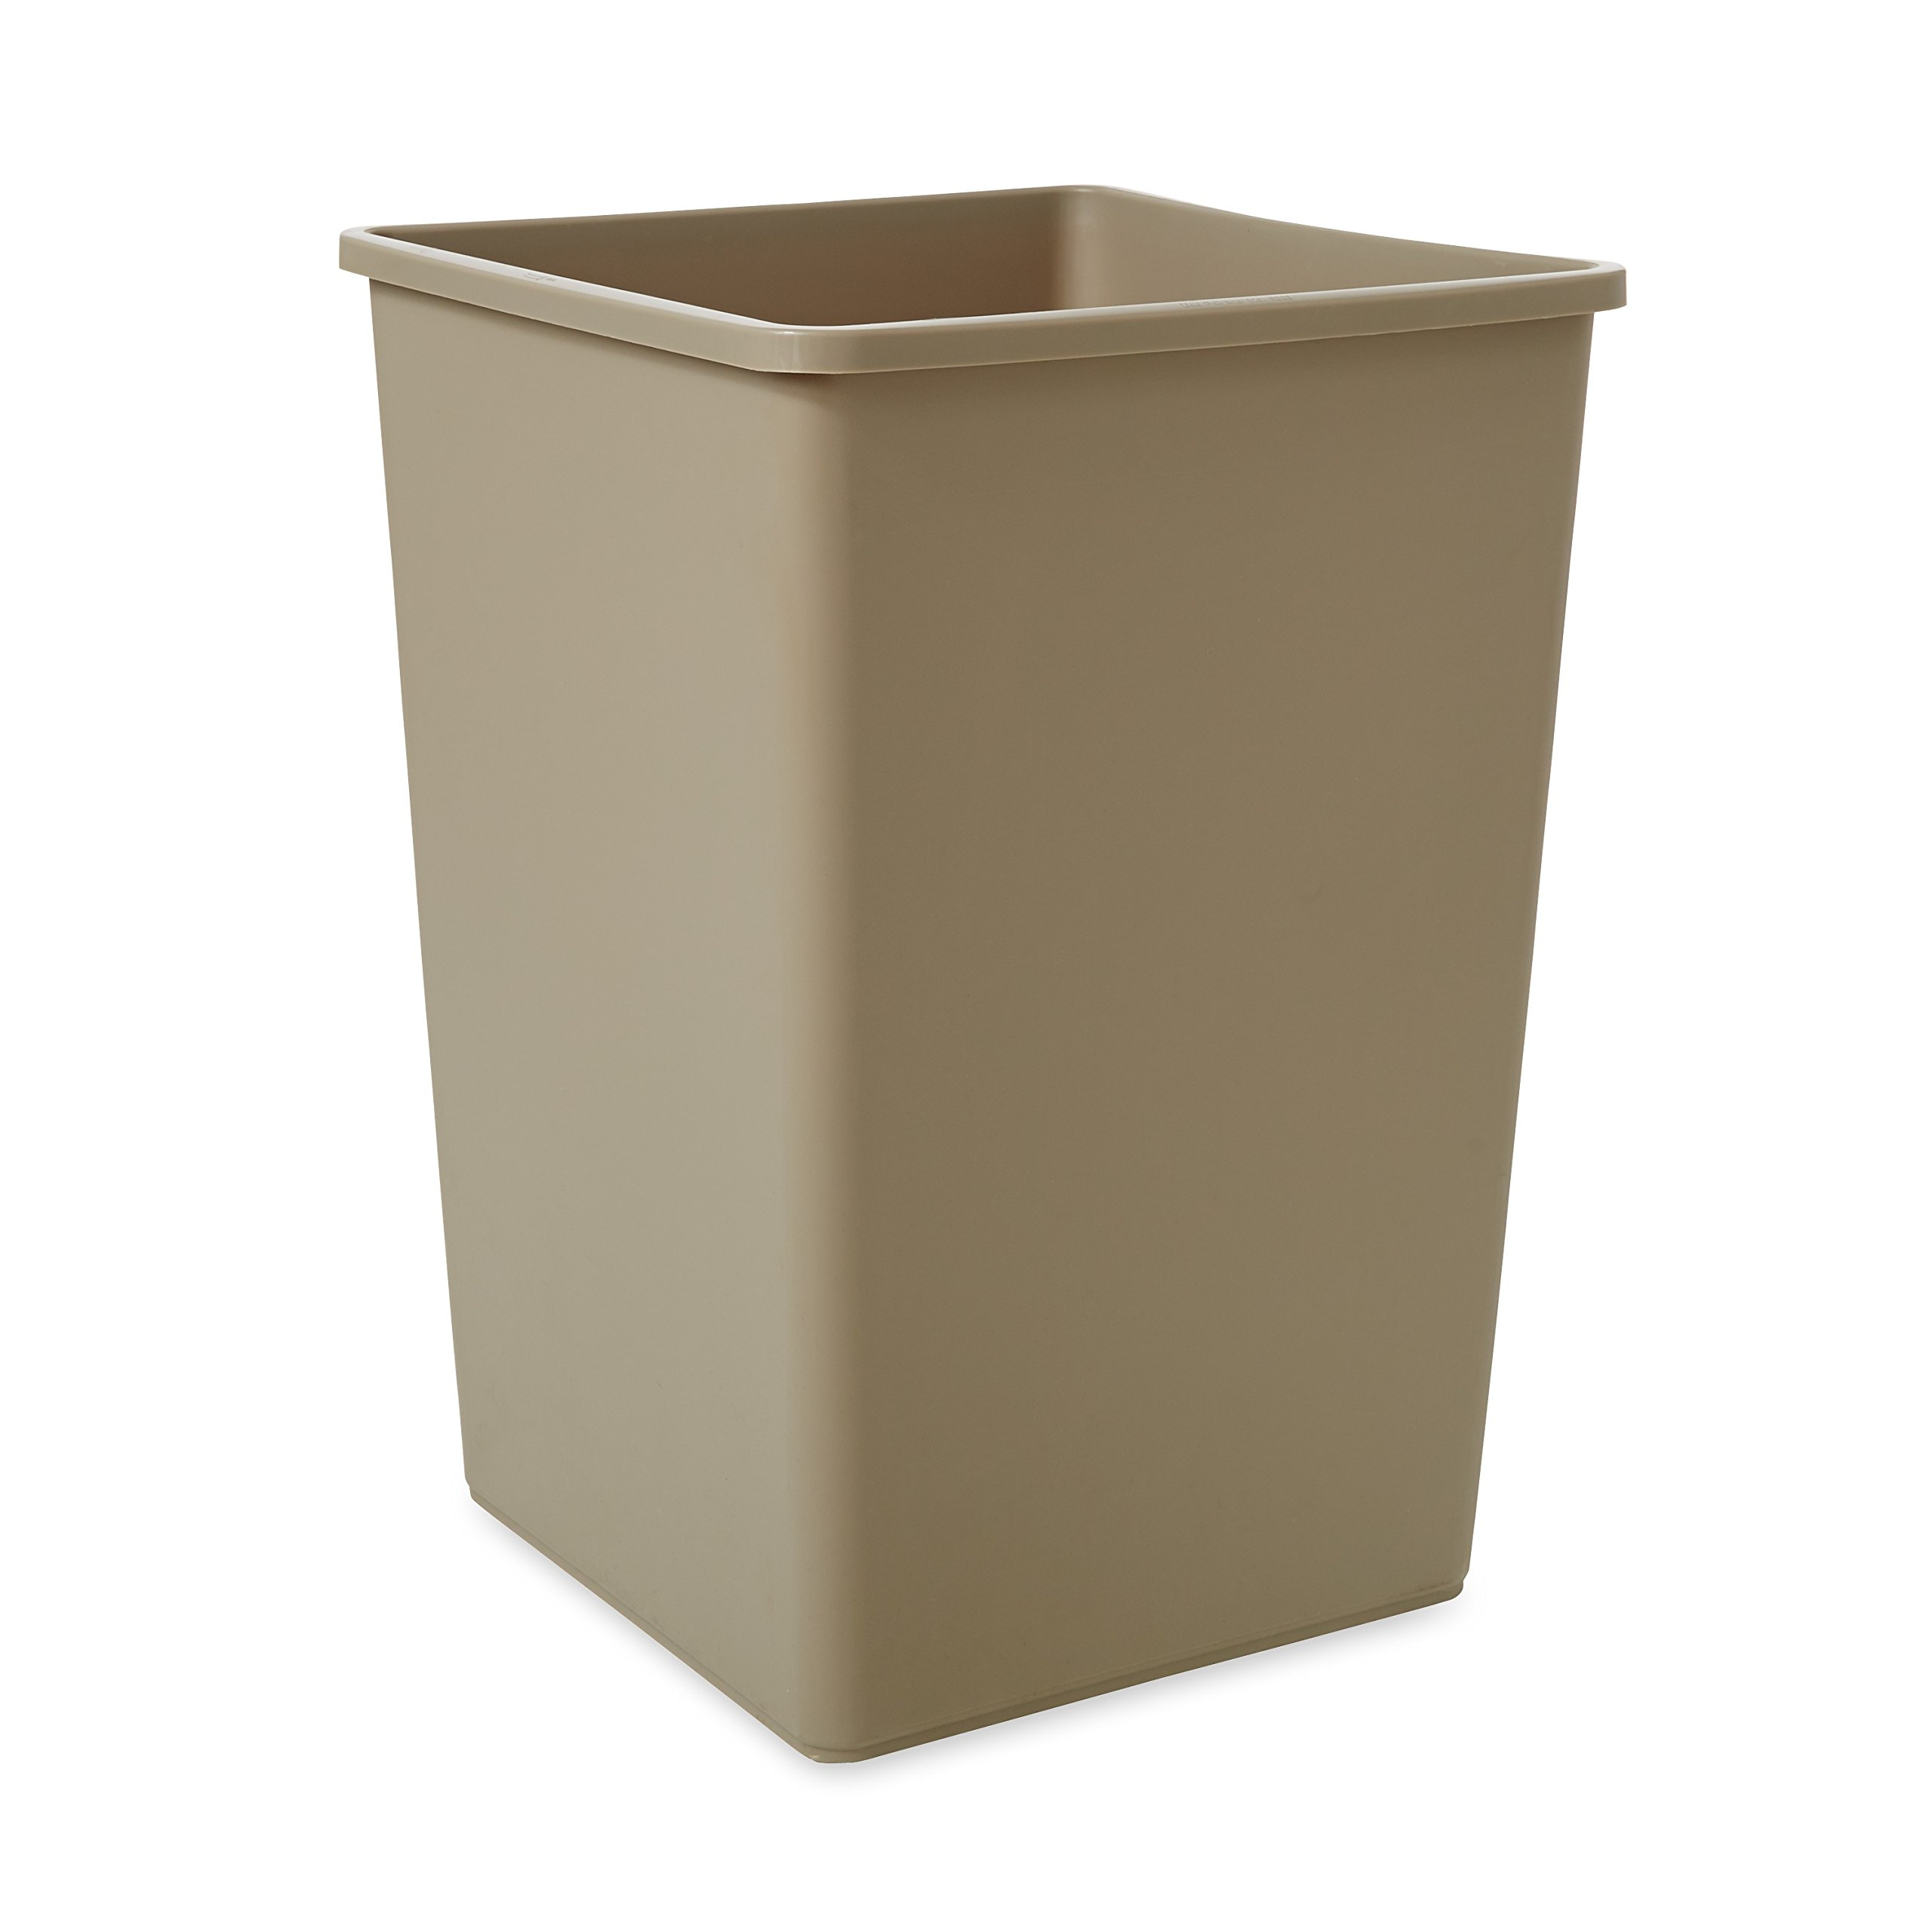 Rubbermaid Commercial Plaza Waste Container Rigid Liner, Square, Plastic, 35 Gallons, Beige (395800BG)